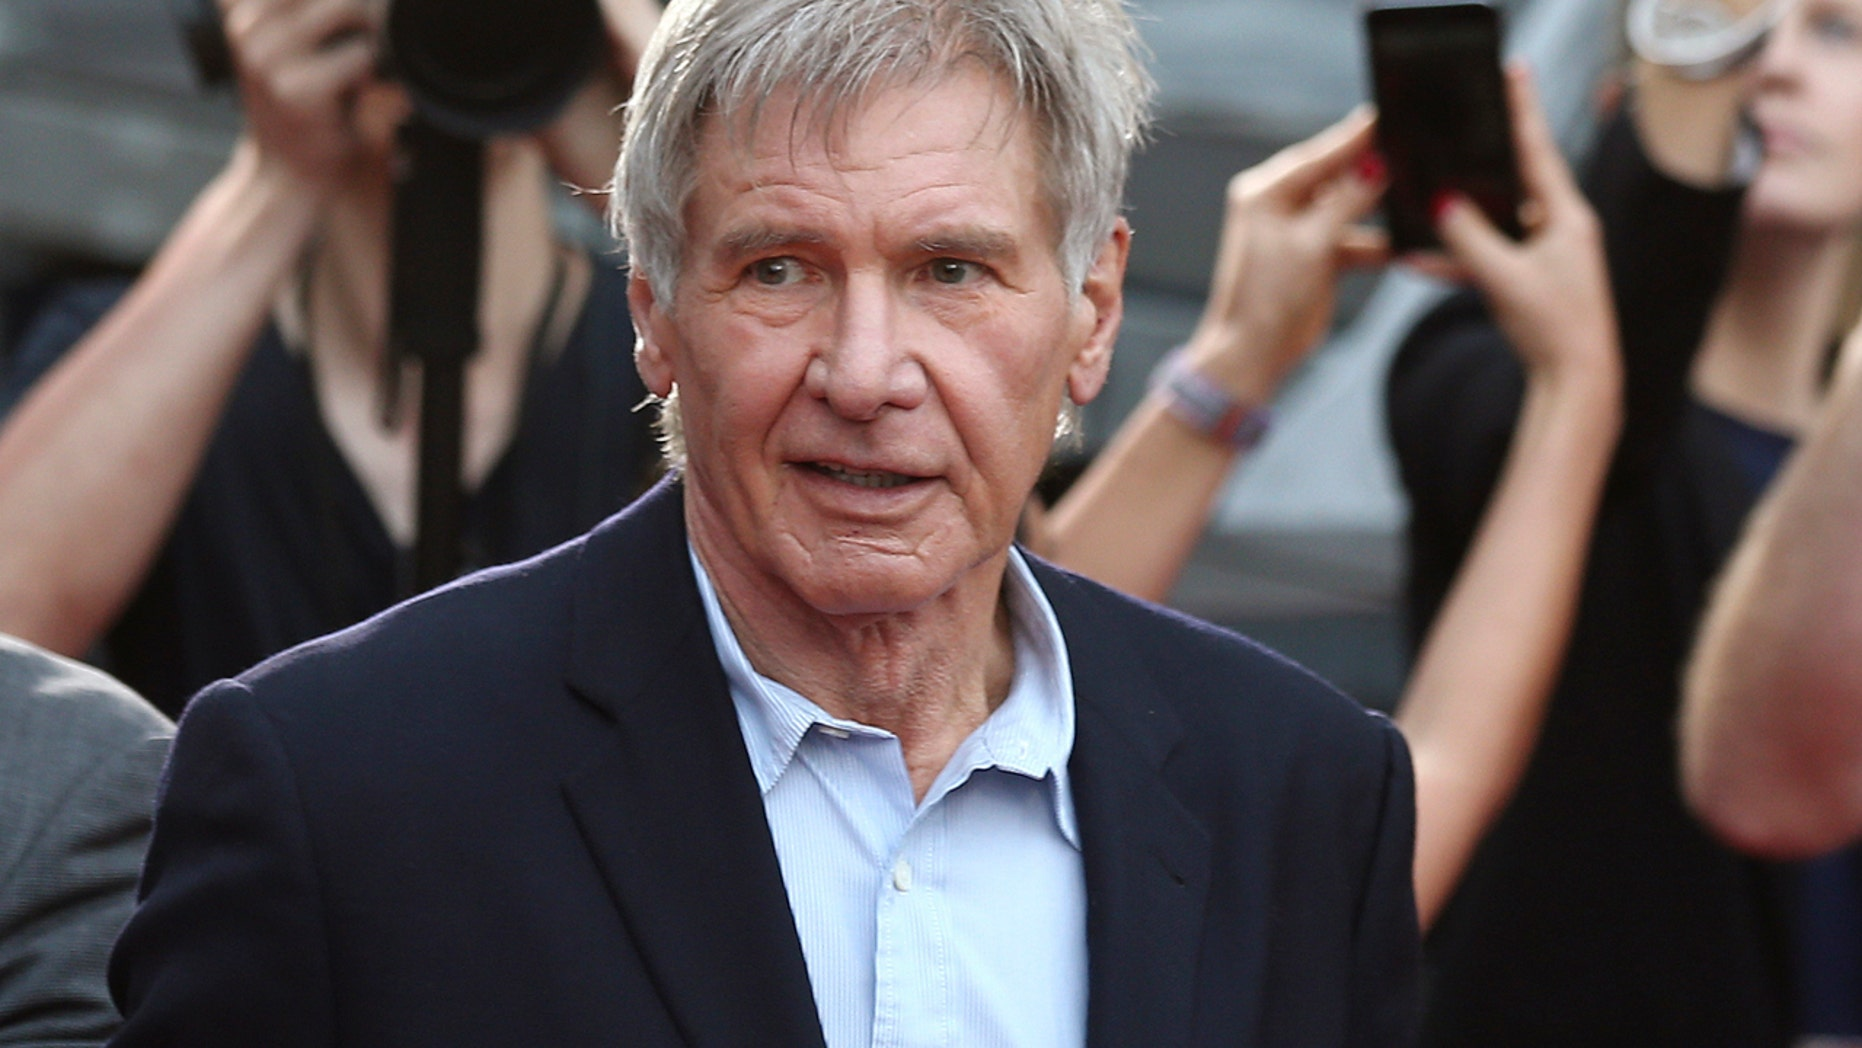 """Dec. 10, 2015: Harrison Ford greets fans during a Star Wars fan event in Sydney. A film production company has been fined 1.6 million pounds ($1.95 million) over an accident on the set of """"Star Wars: The Force Awakens"""" that broke the leg of star Harrison Ford."""